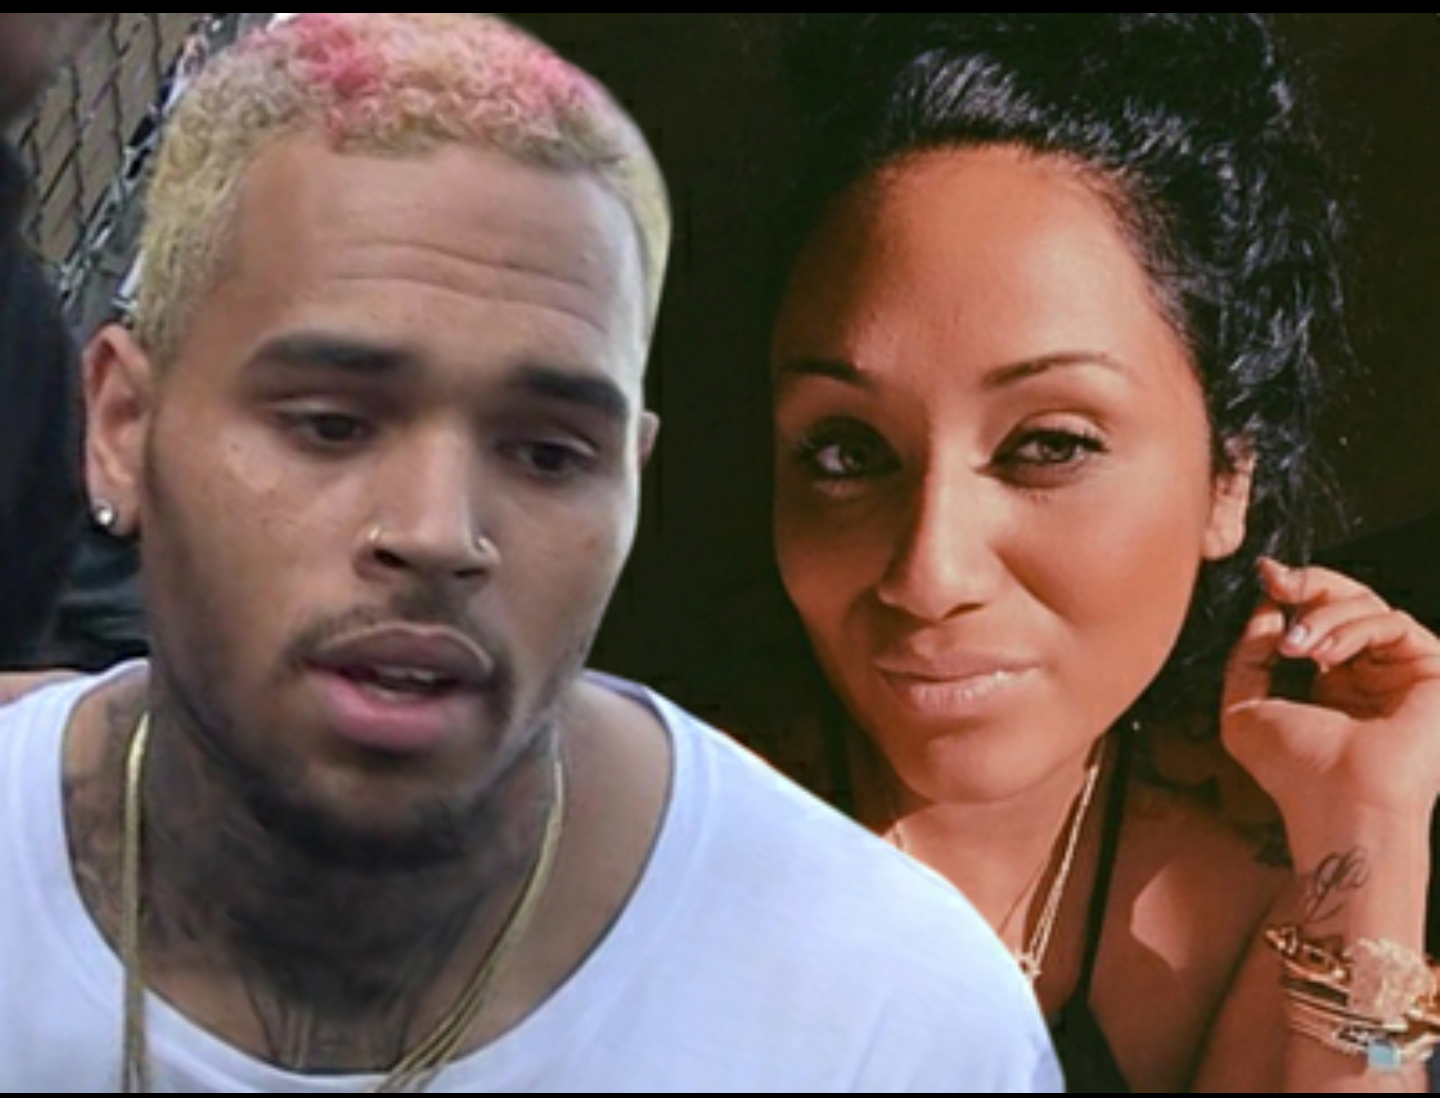 CHRIS BROWN'S BABY MAMA CLAIMS HE GAVE THEIR KID ASTHMA ...